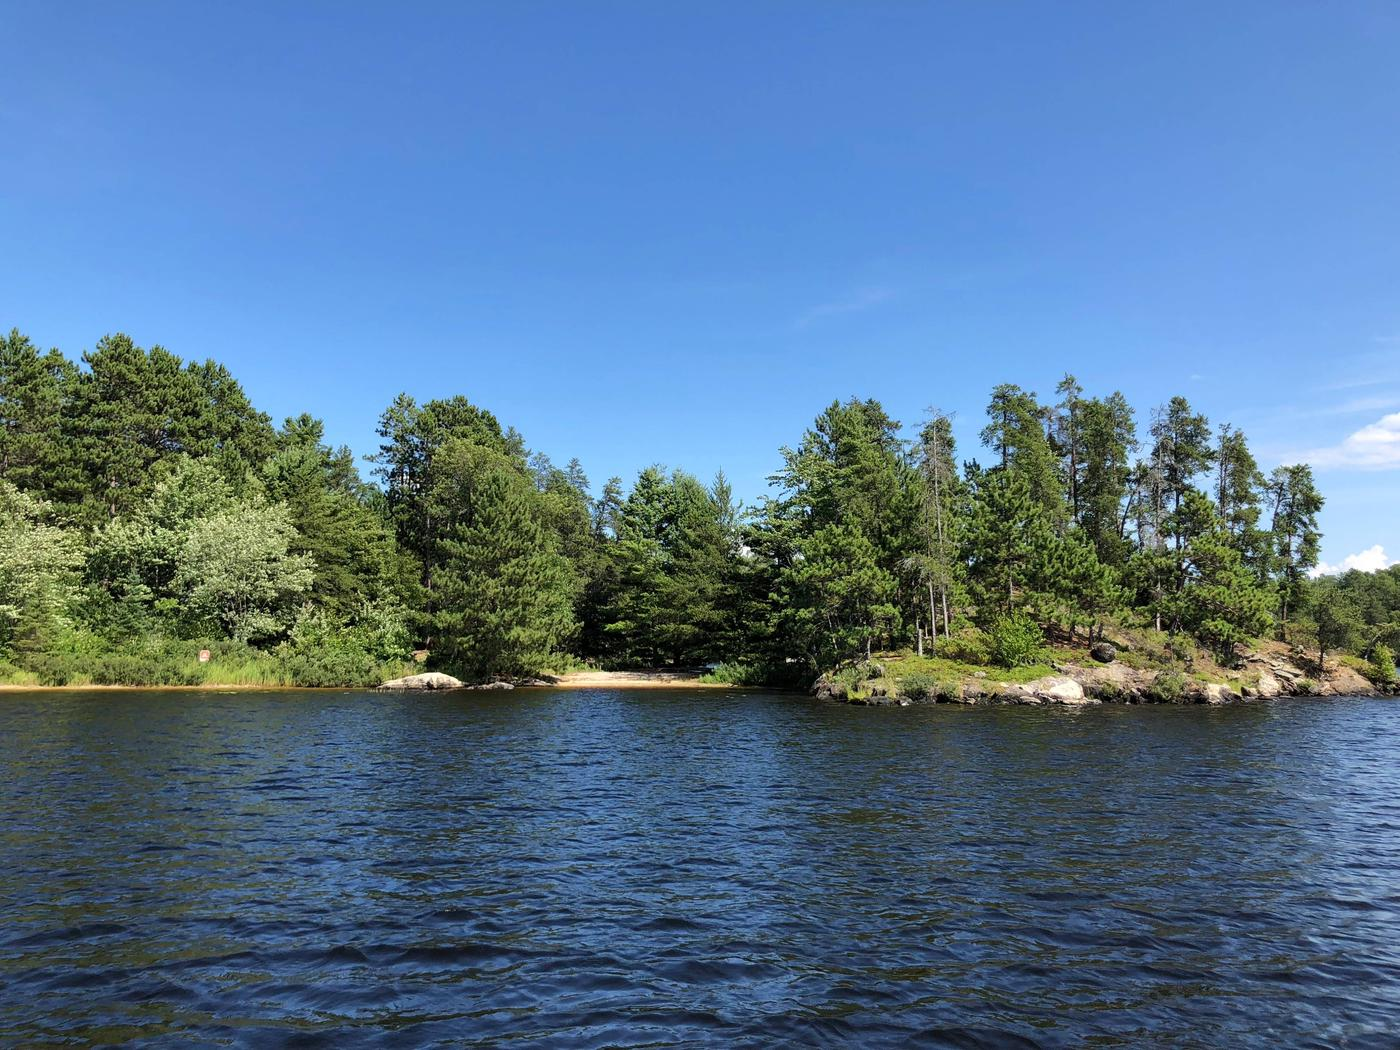 N37 - Sandbar Point View of campsite from the water